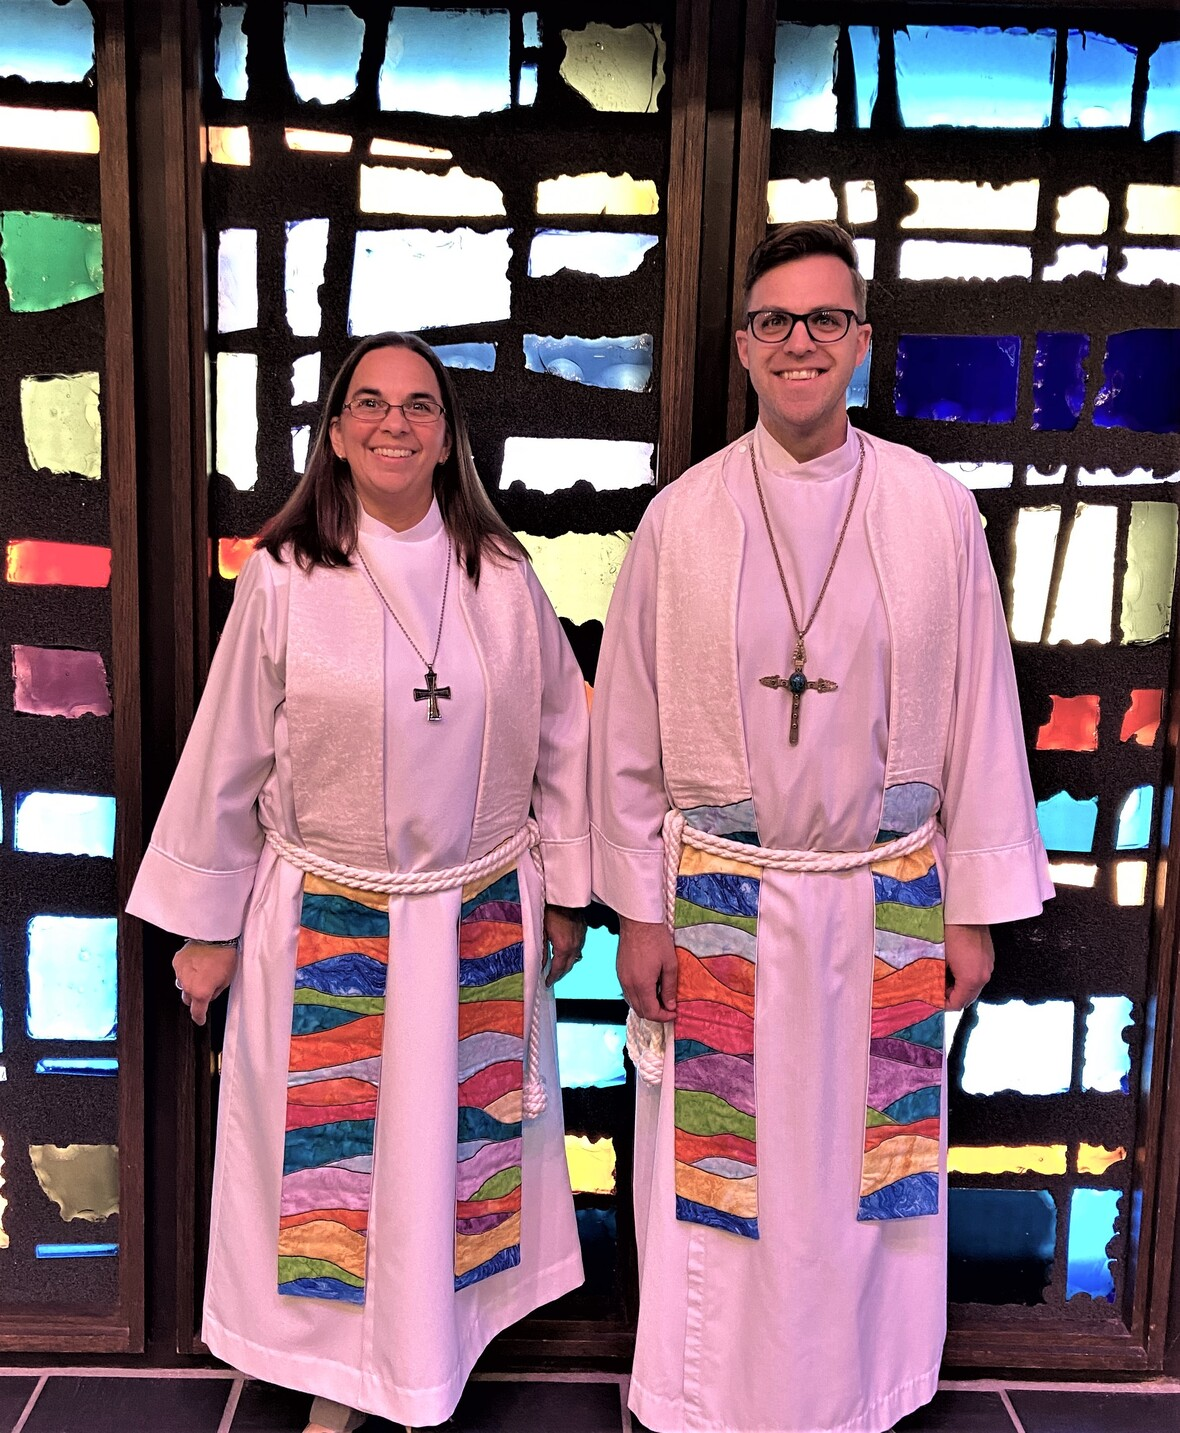 Pastor Chad and Katrina with new stoles